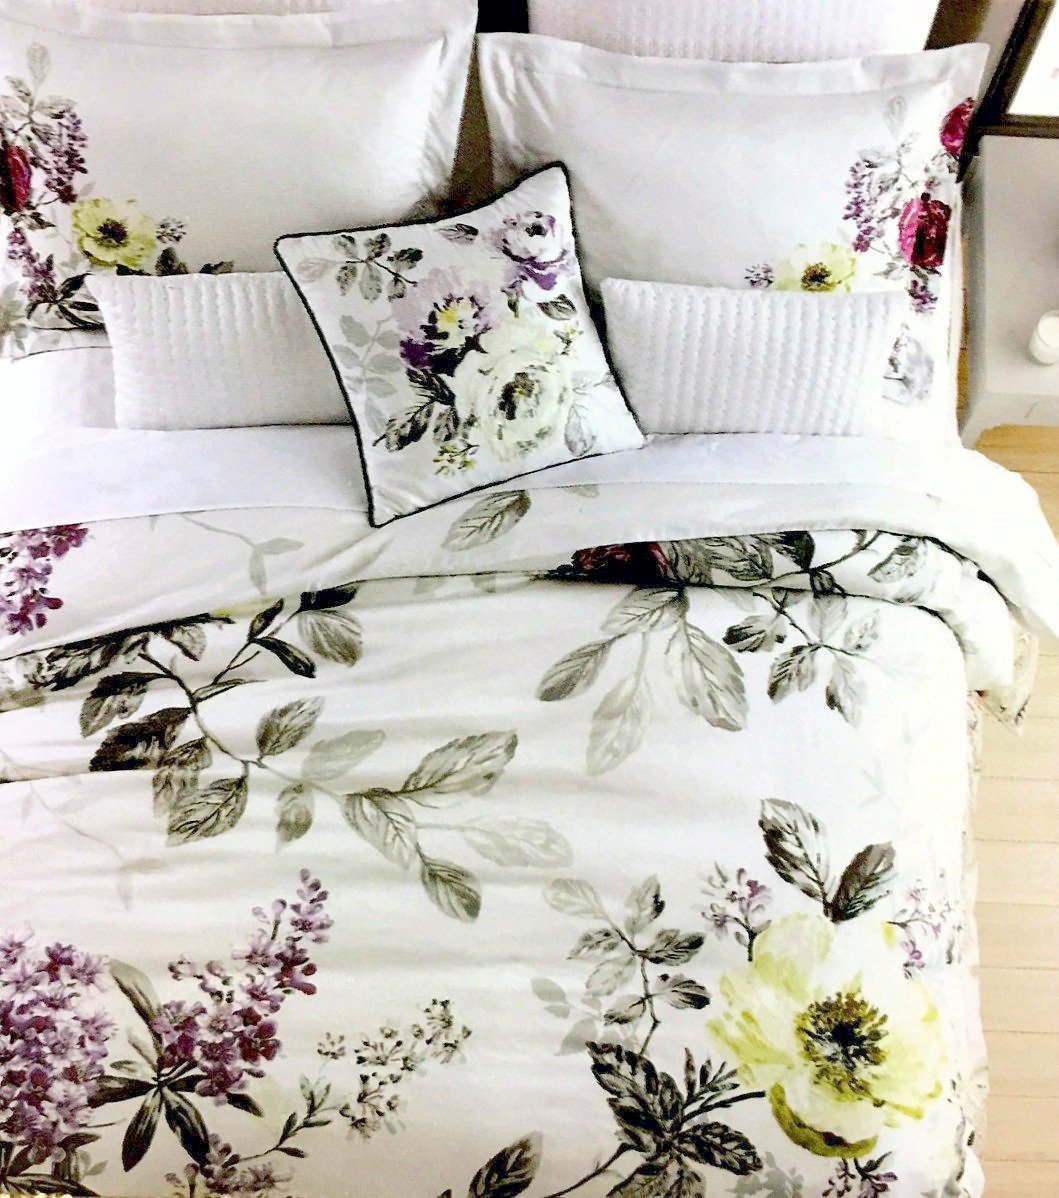 Tahari Home Vintage Botanical Wild Flower Print Duvet Quilt Cover 100-percent Cotton Bedding Set Colorful Floral Branches Drawing of Summer Blossoms (Queen, Mauve Purple) by Tahari Home